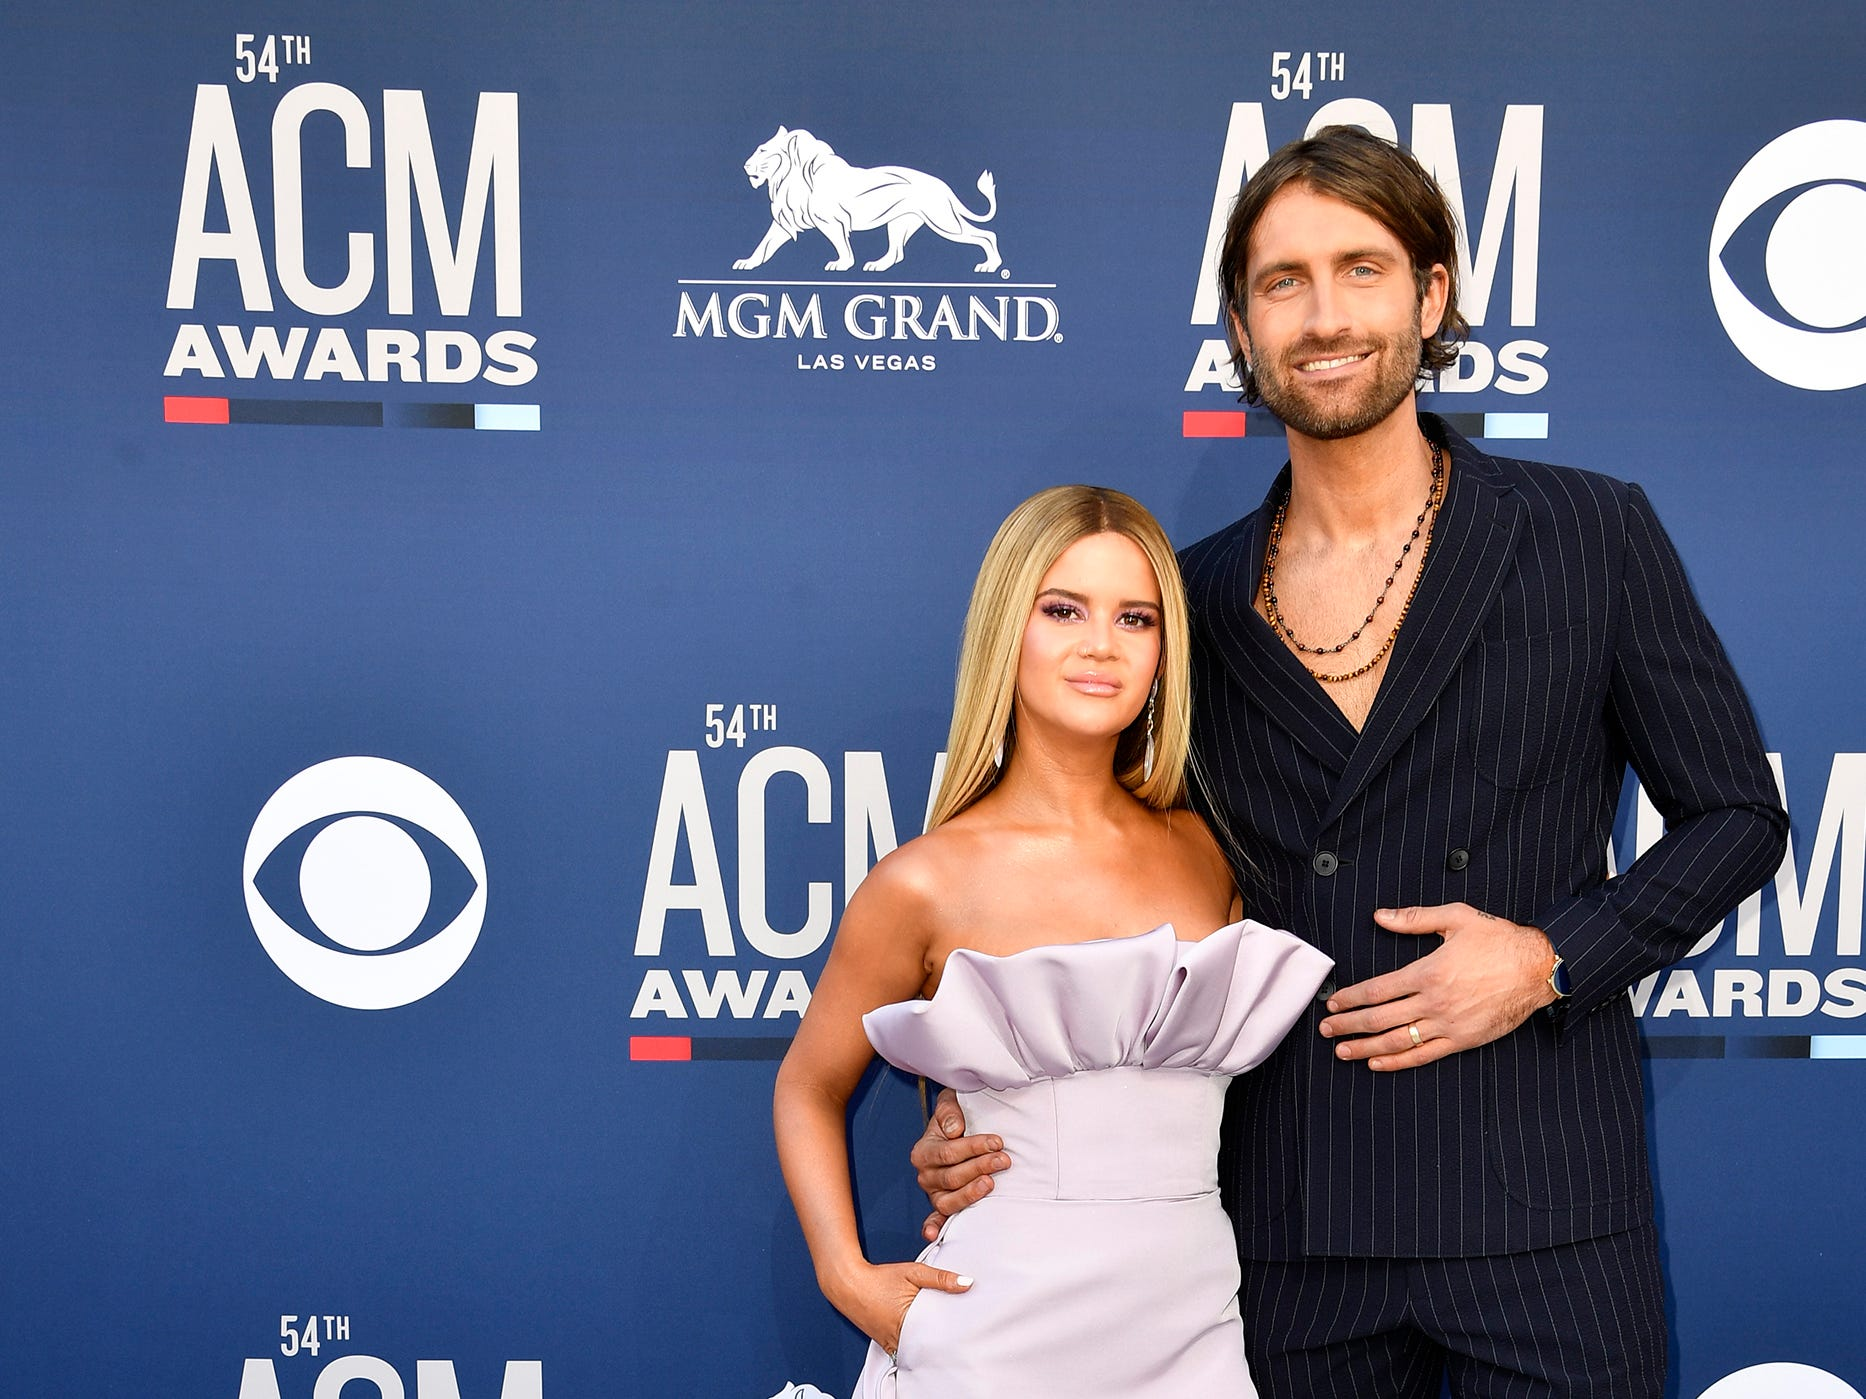 Maren Morris, left, and Ryan Hurd, walk the red carpet at the 54TH Academy of Country Music Awards Sunday, April 7, 2019, in Las Vegas, Nev.